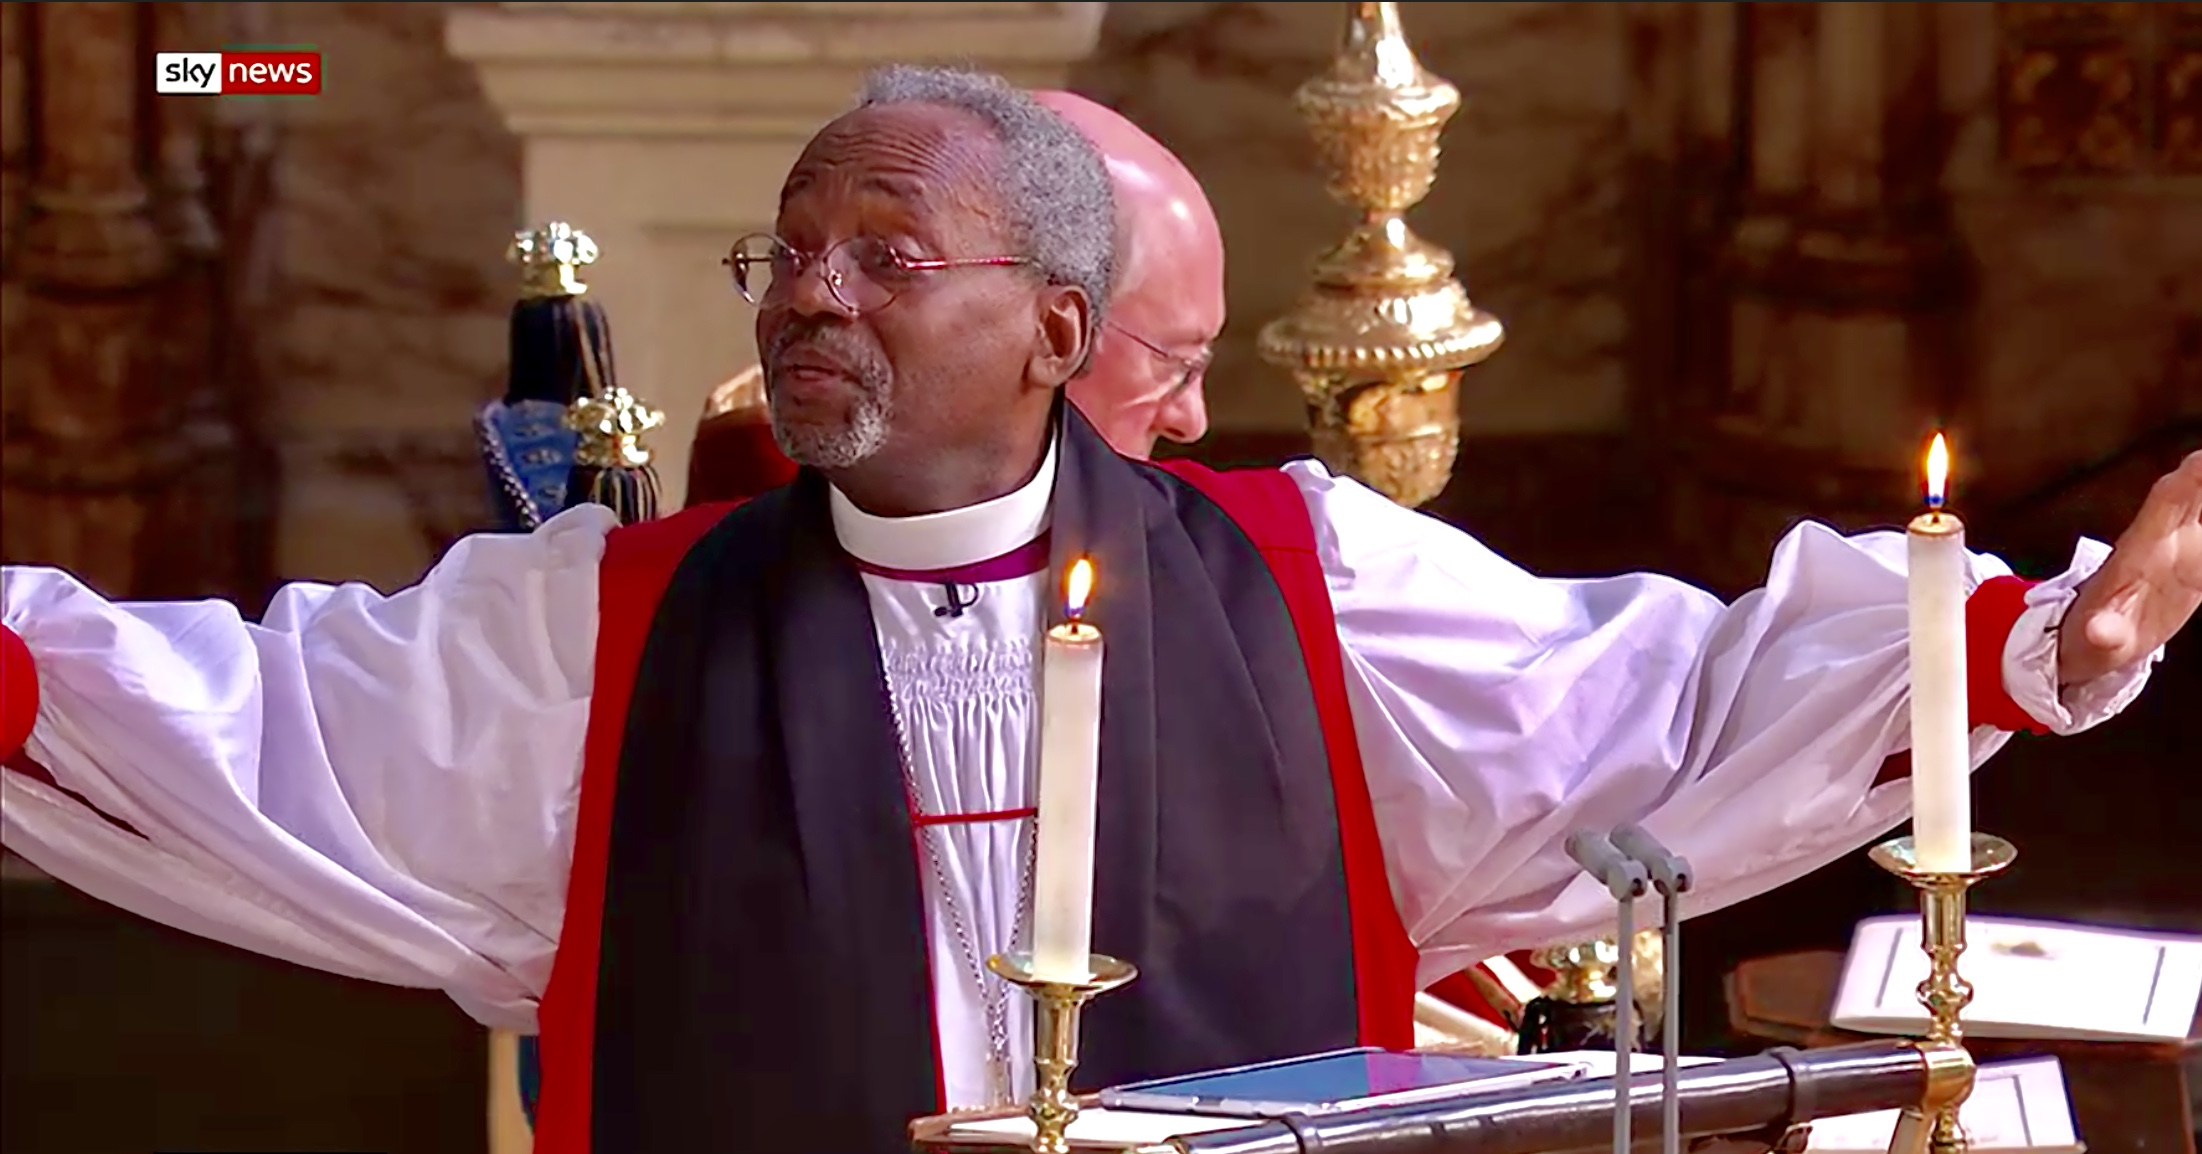 Michael Curry Royal Wedding.Michael Curry The Royal Wedding A Star Turn Offers The World